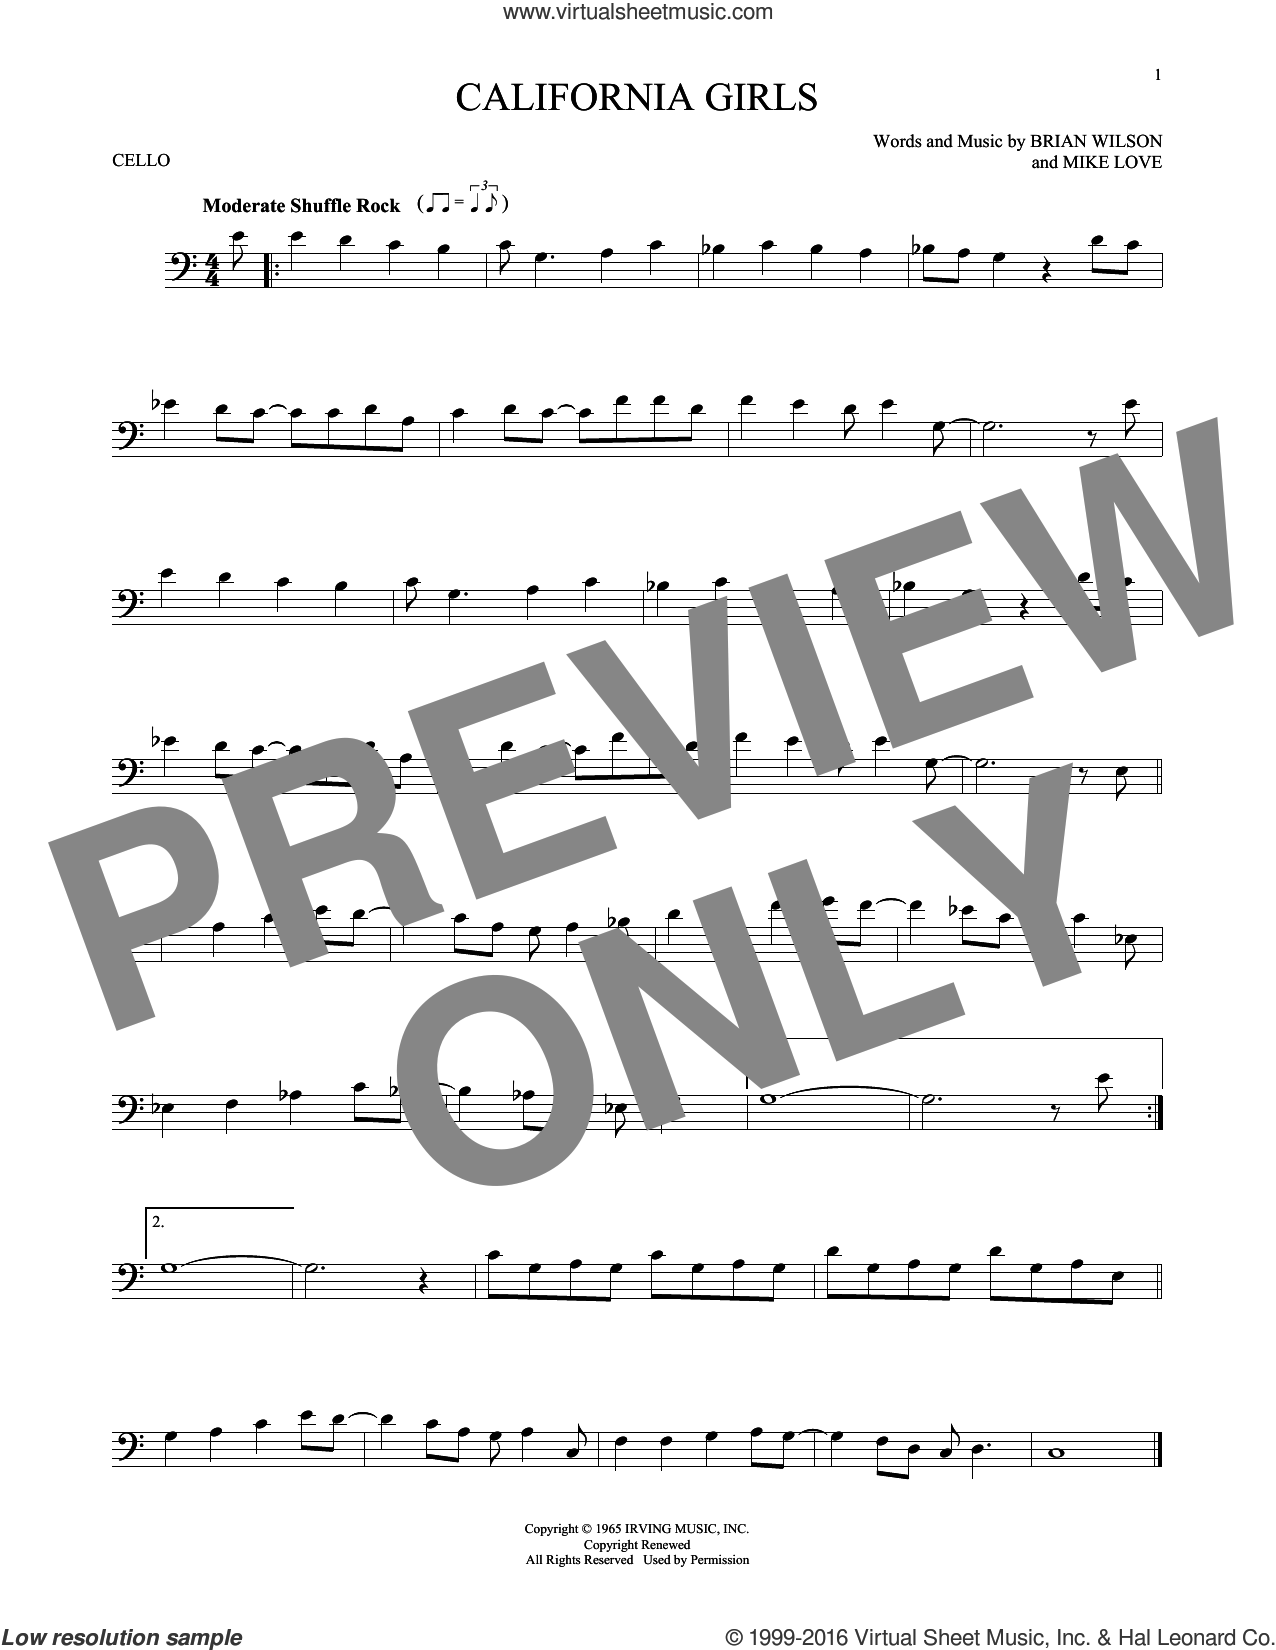 California Girls sheet music for cello solo by The Beach Boys, David Lee Roth, Brian Wilson and Mike Love, intermediate skill level